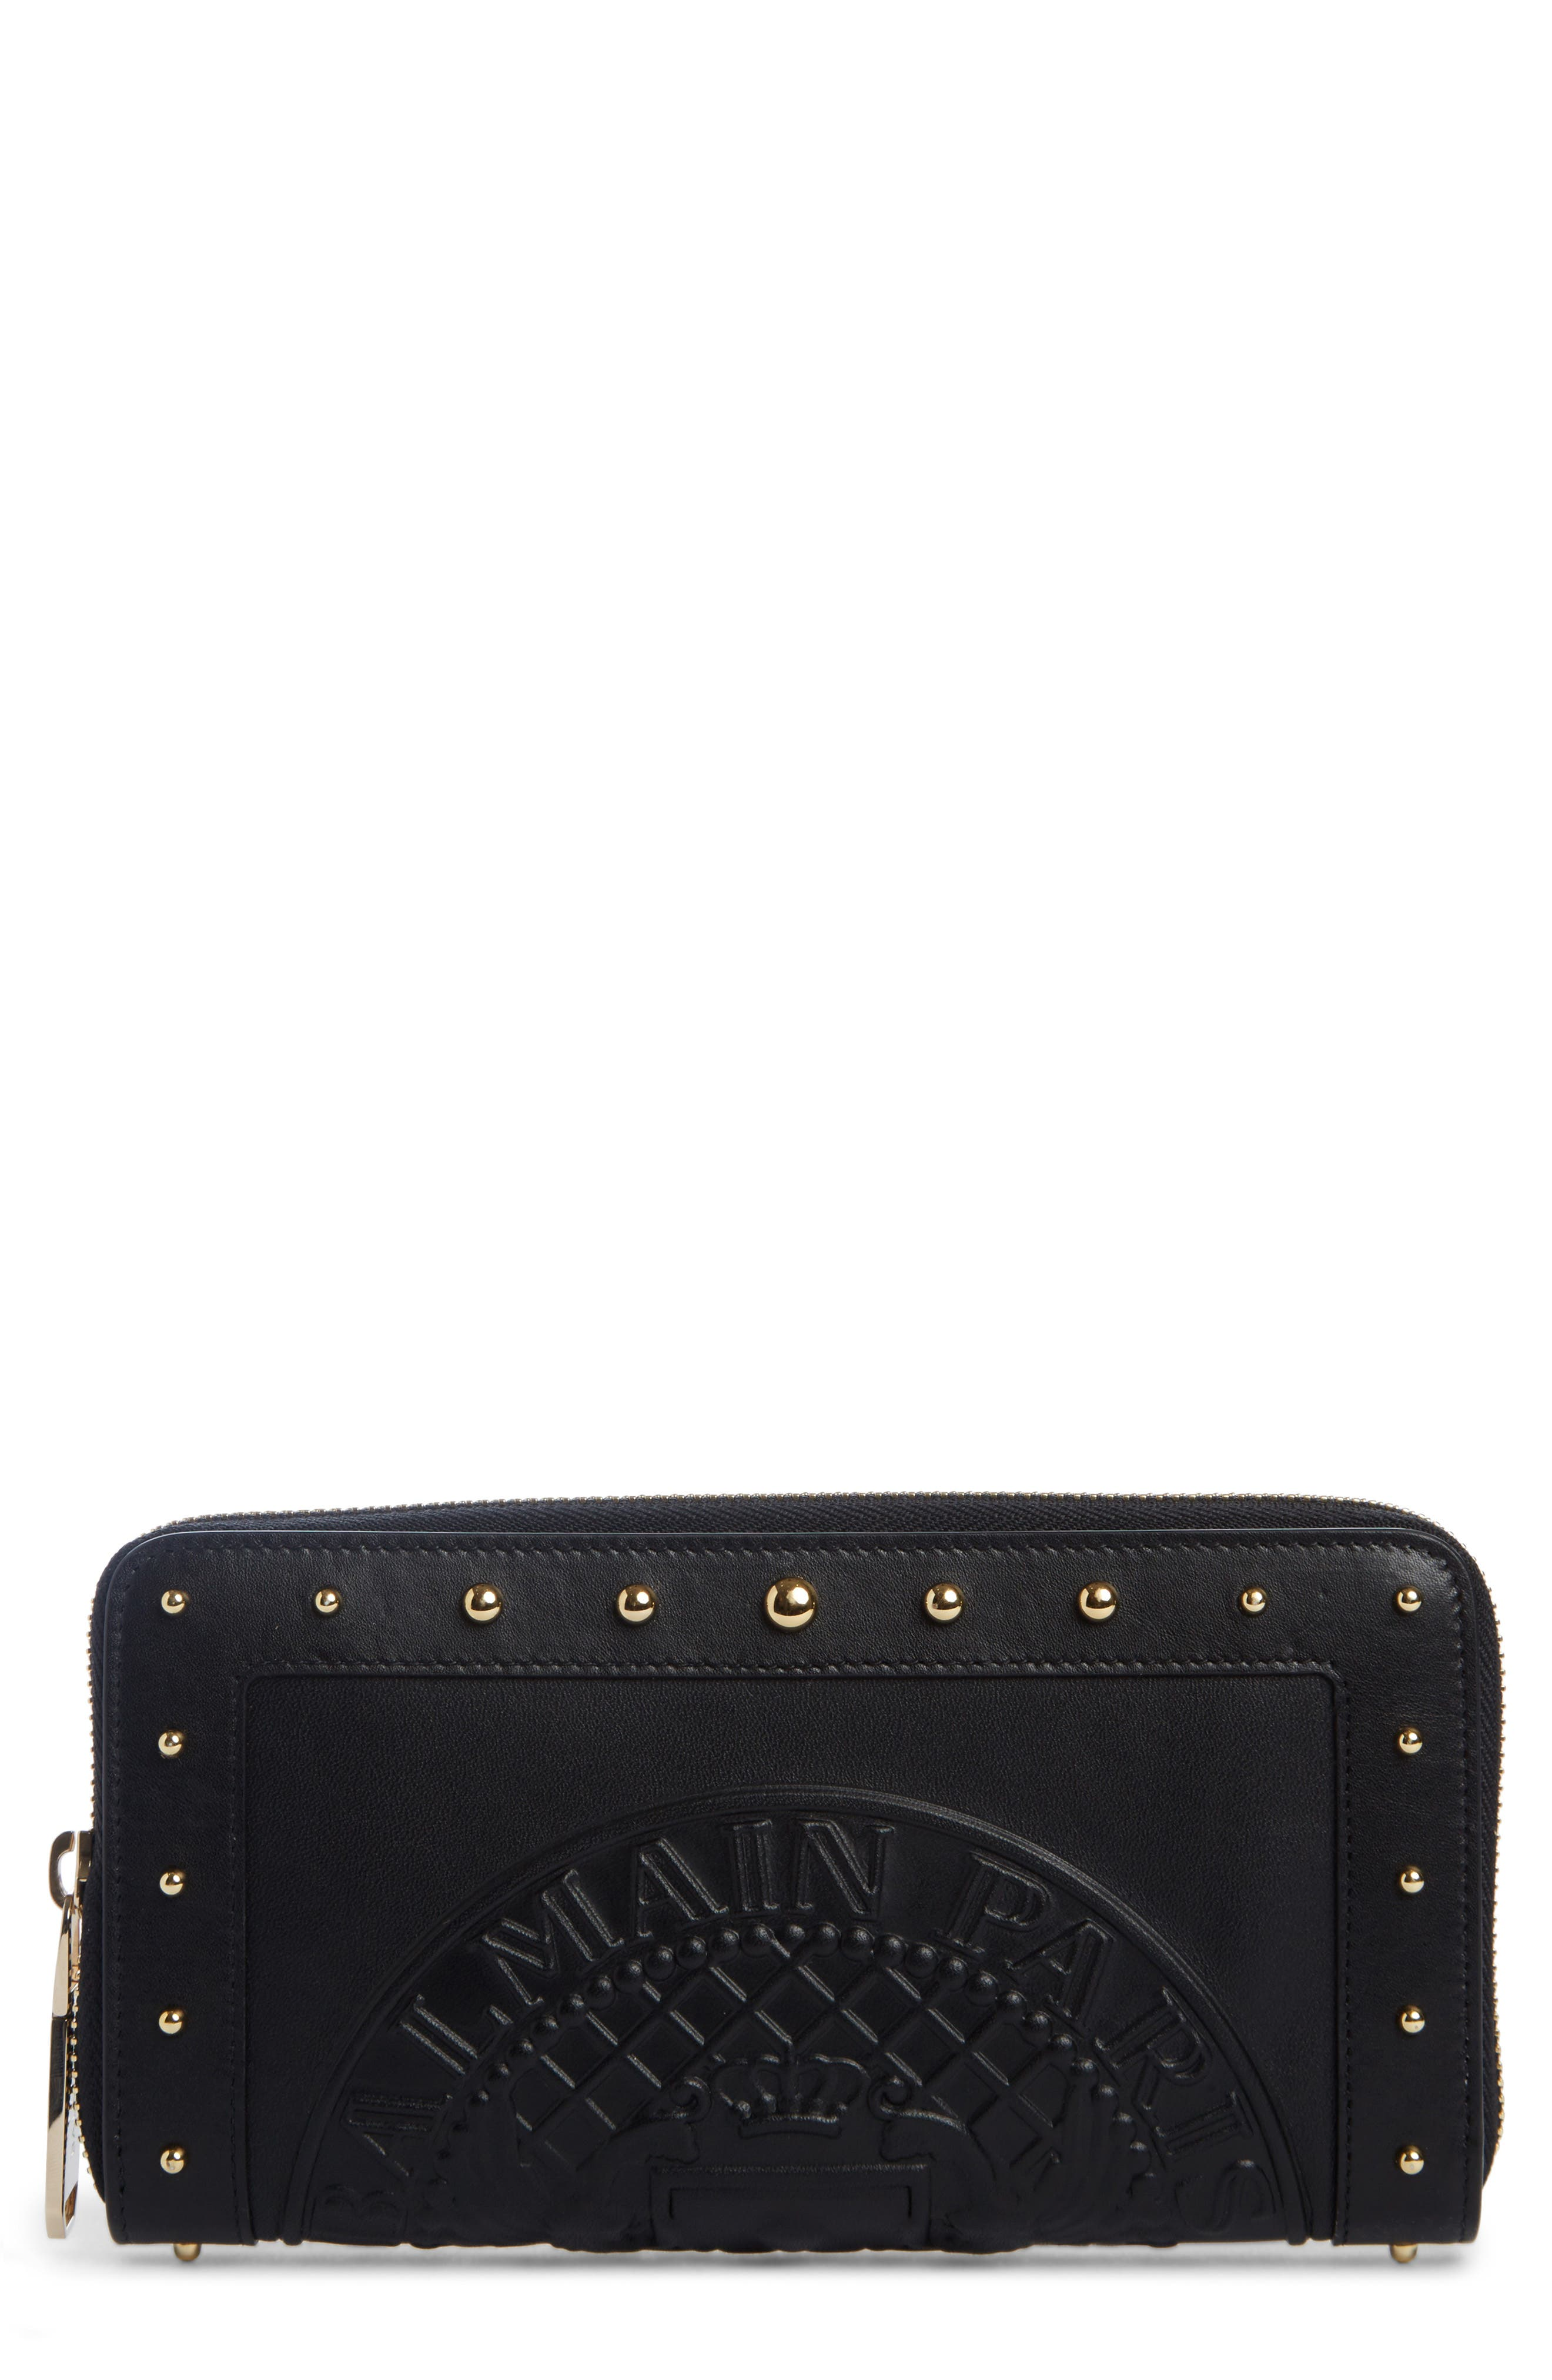 Alternate Image 1 Selected - Balmain Renaissance Leather Continental Wallet